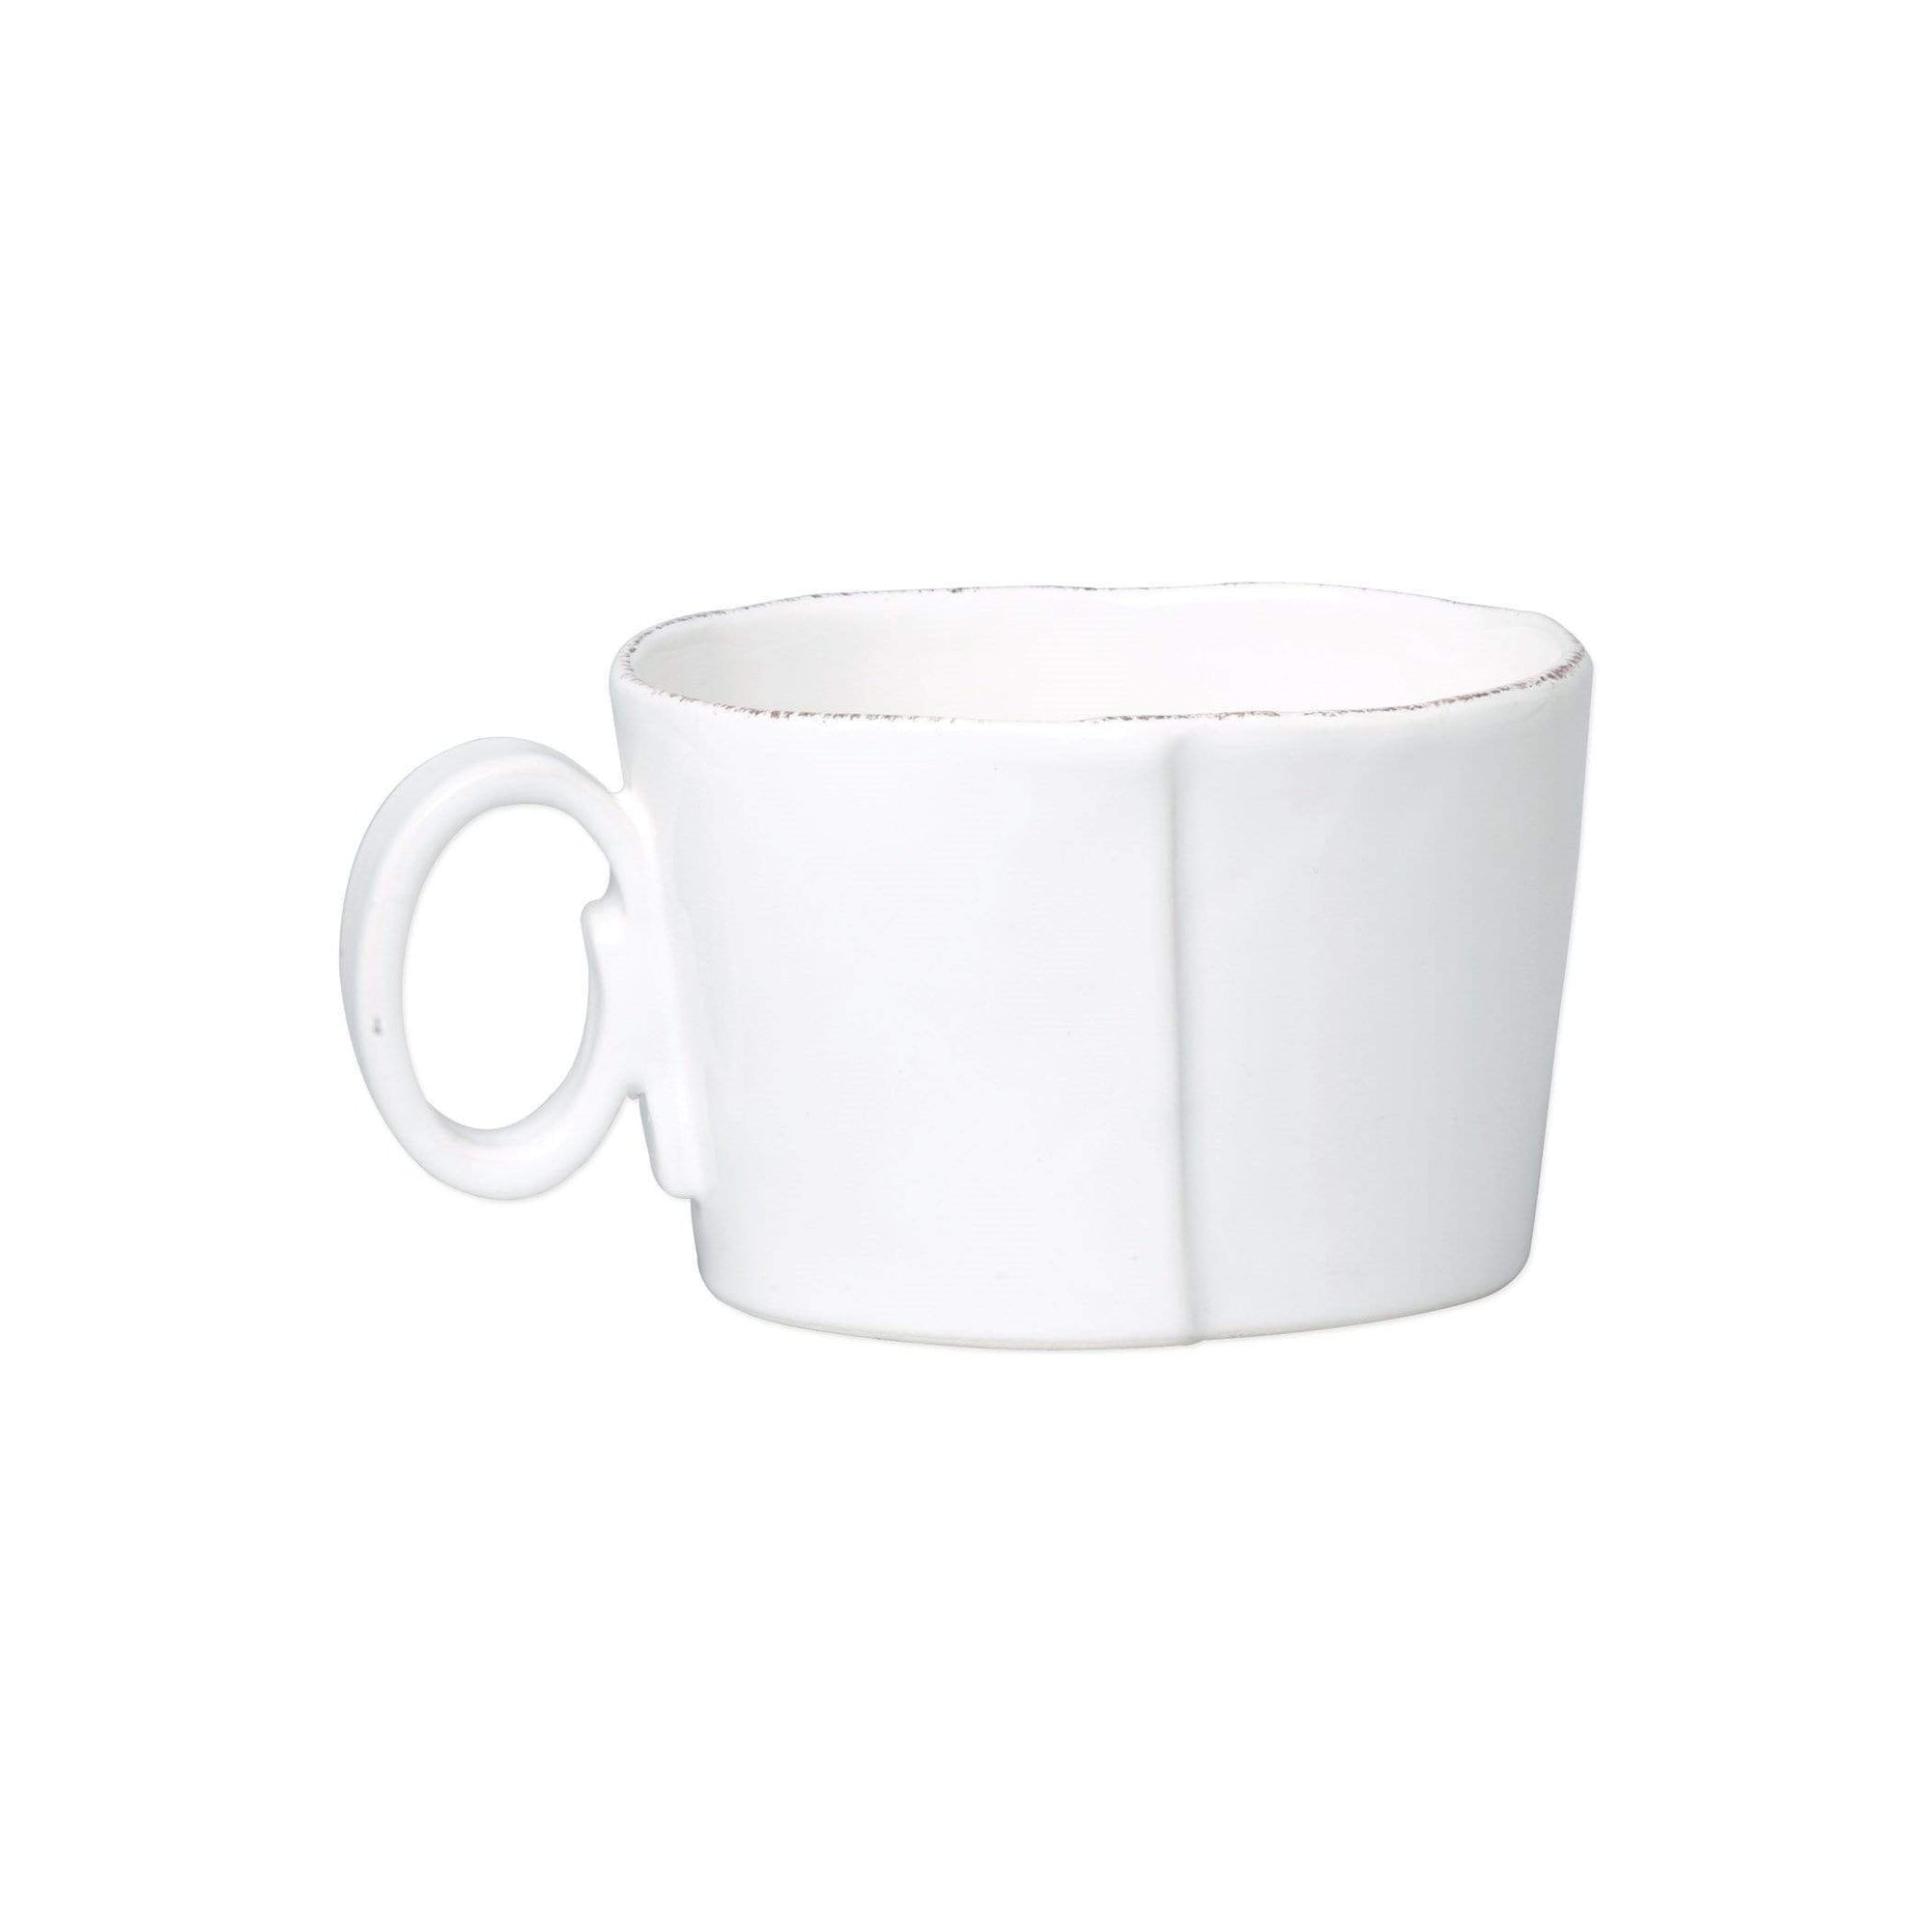 Vietri Vietri Lastra Jumbo Cup - Available in 6 Colors White LAS-2611W